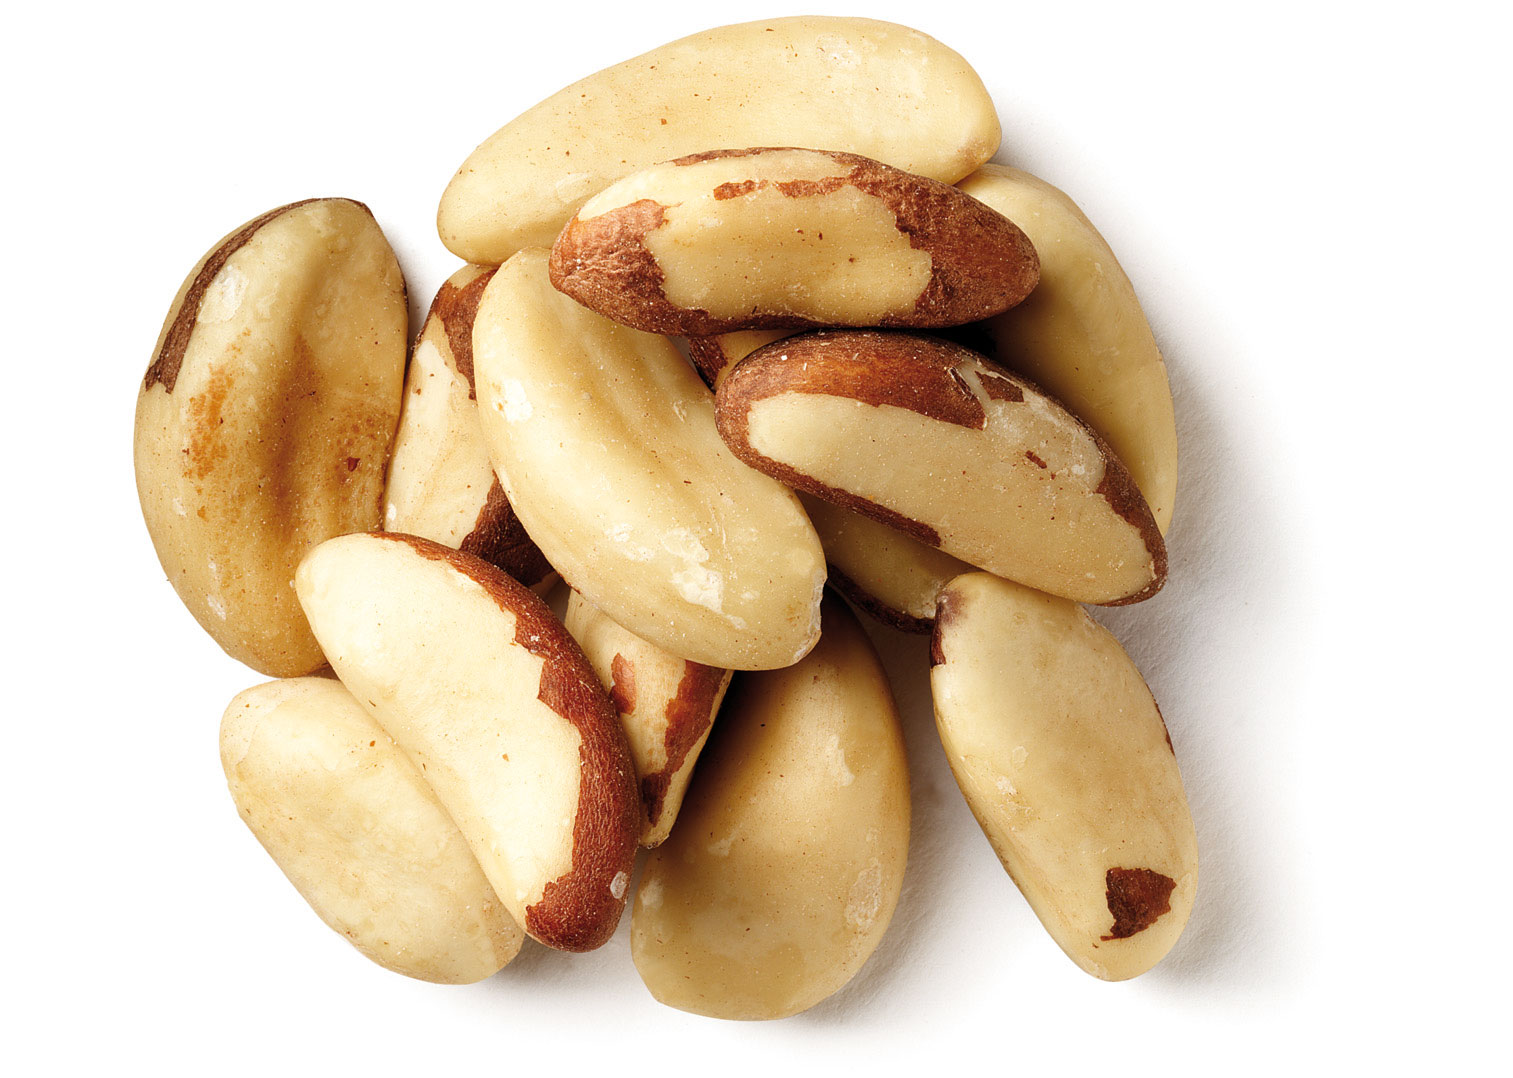 What is in brazil nuts